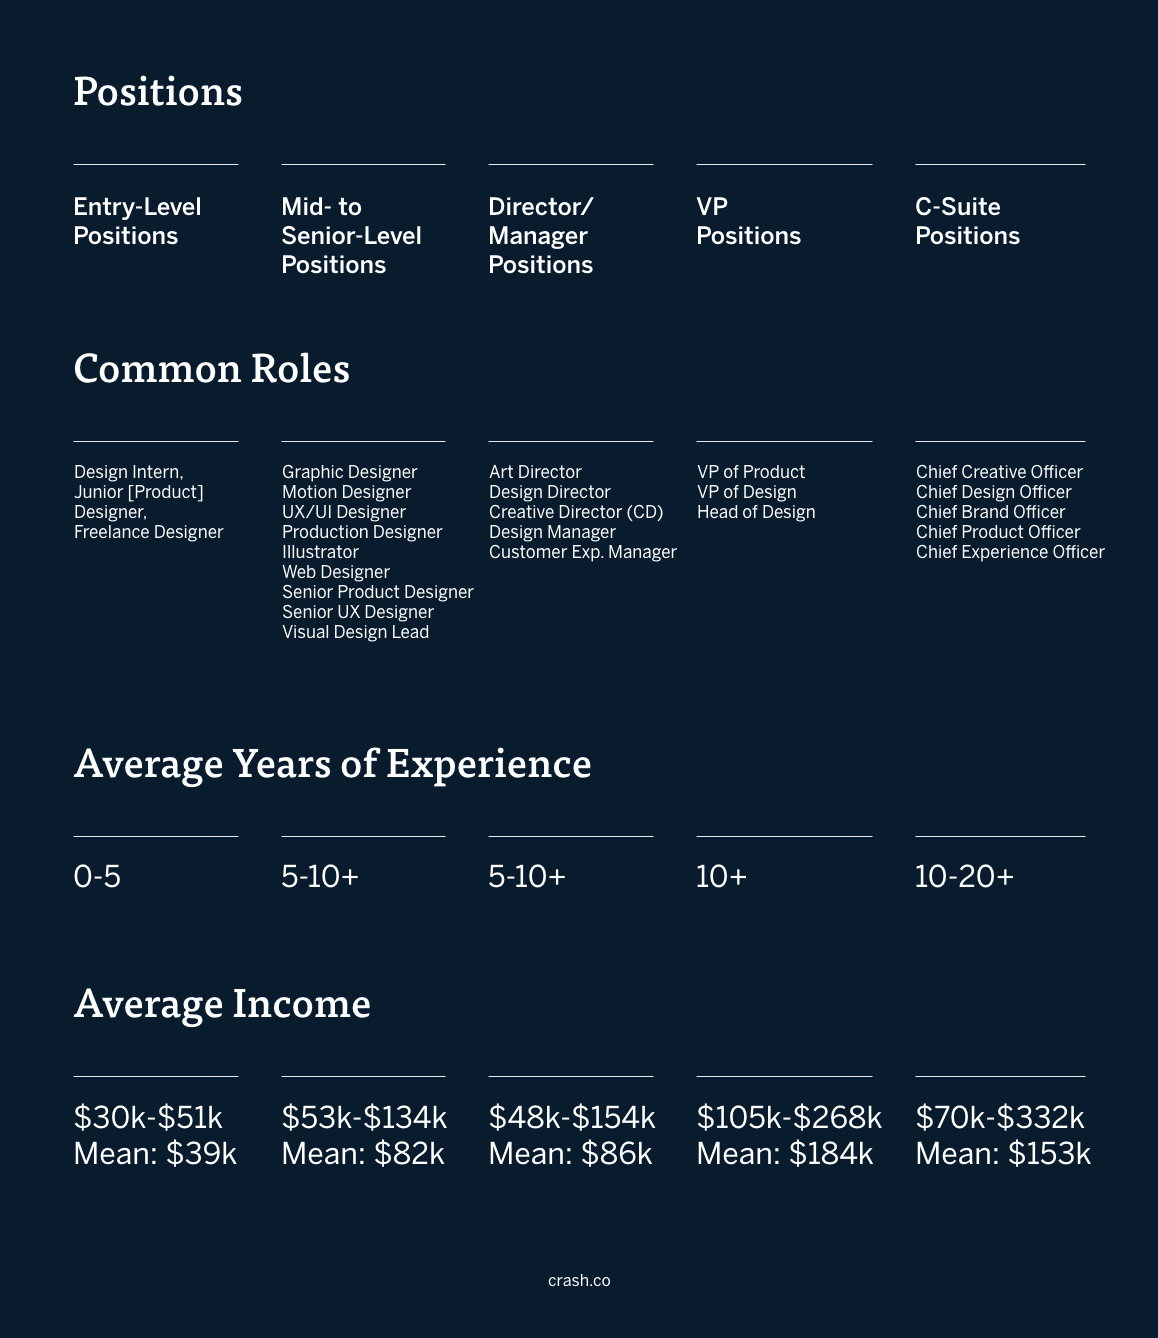 A graphic with columns on entry-level design positions, common roles for entry-level designers (Design Intern, Junior [Product] Designer, Freelance Designer), average years of experience for entry-level marketers (0-5), and average income for entry-level marketers ($39k). Also includes design mid- to senior-level common roles (Graphic Designer, Motion Designer, UX/UI Designer, Production Designer, Illustrator, Web Designer, Senior Product Designer, Senior UX Designer, Visual Design Lead), design mid- to senior-level average years of experience (5-10+), and average income for mid- to senior-level design roles ($82k) from Payscale. There is a column on design manager/director common roles (Art Director, Design Director, Creative Director [CD], Design Manager, Customer Experience Manager), design director/manager average years of experience (5-10+), and average income for design director and design manager jobs ($86k). There is a breakdown of design vice president positions–common roles for design VPs (VP of Product, VP of Design, Head of Design), design vice president average years of experience (10+),  and average income for design vice presidents ($184k). Also included in the last column is design c-suite positions–common design c-suite jobs (Chief Creative Officer, Chief Design Officer, Chief Brand Officer, Chief Product Officer, Chief Experience Officer), average years of experience for c-suite designer jobs (10-20+), and average income for c-suite design jobs ($153k).